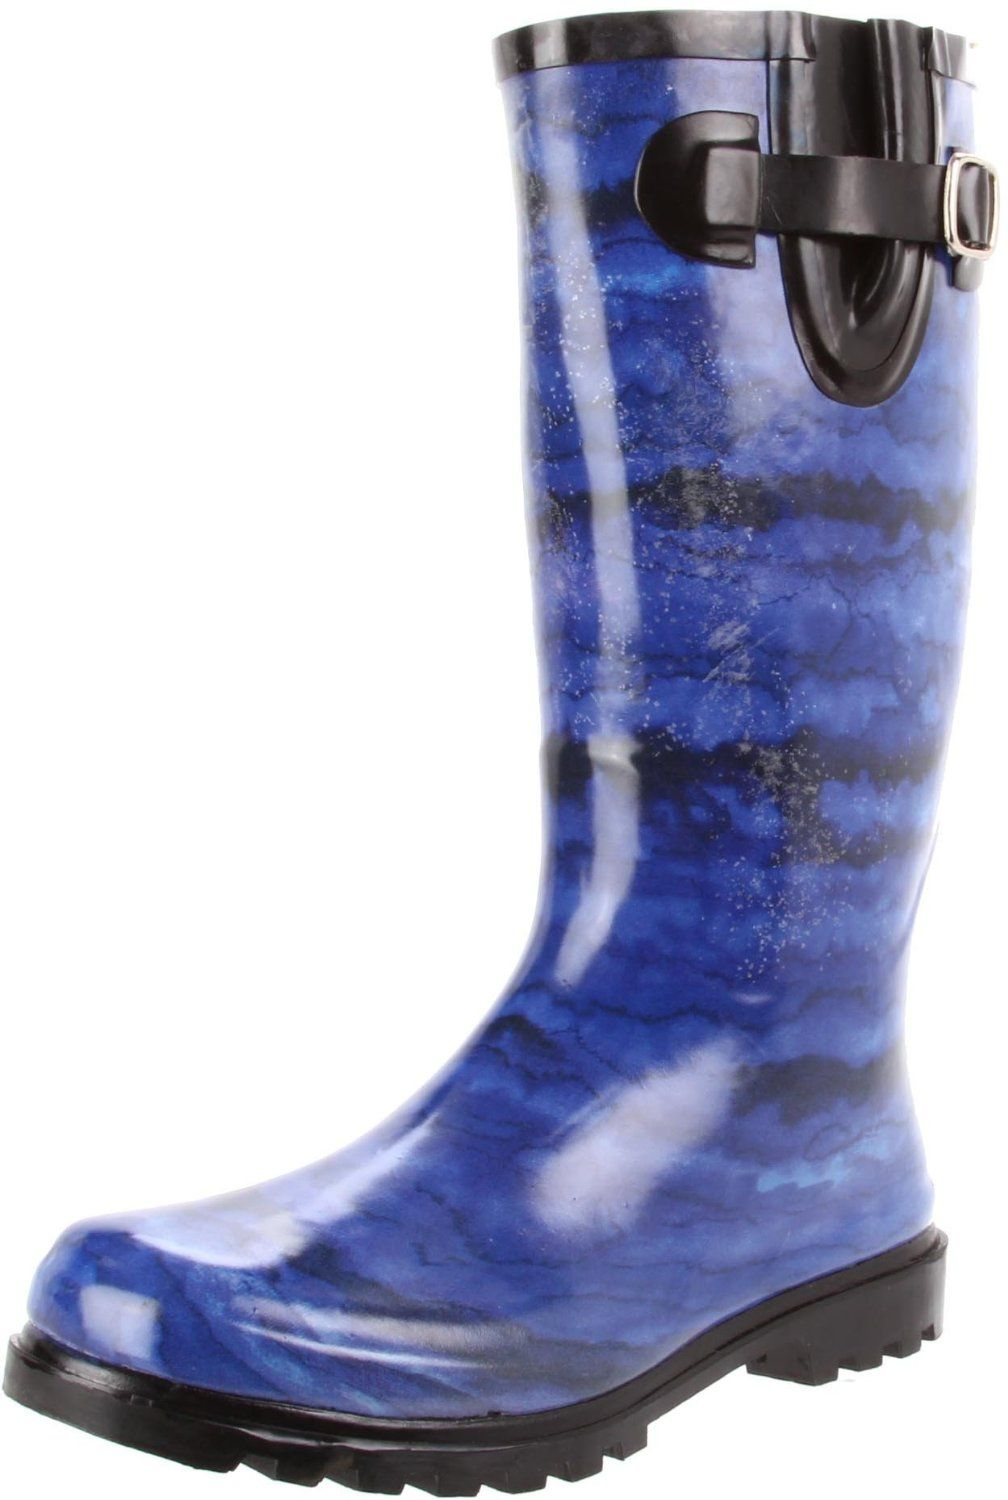 Nomad Rain Boots Puddles Blue Psychedelic Cheap